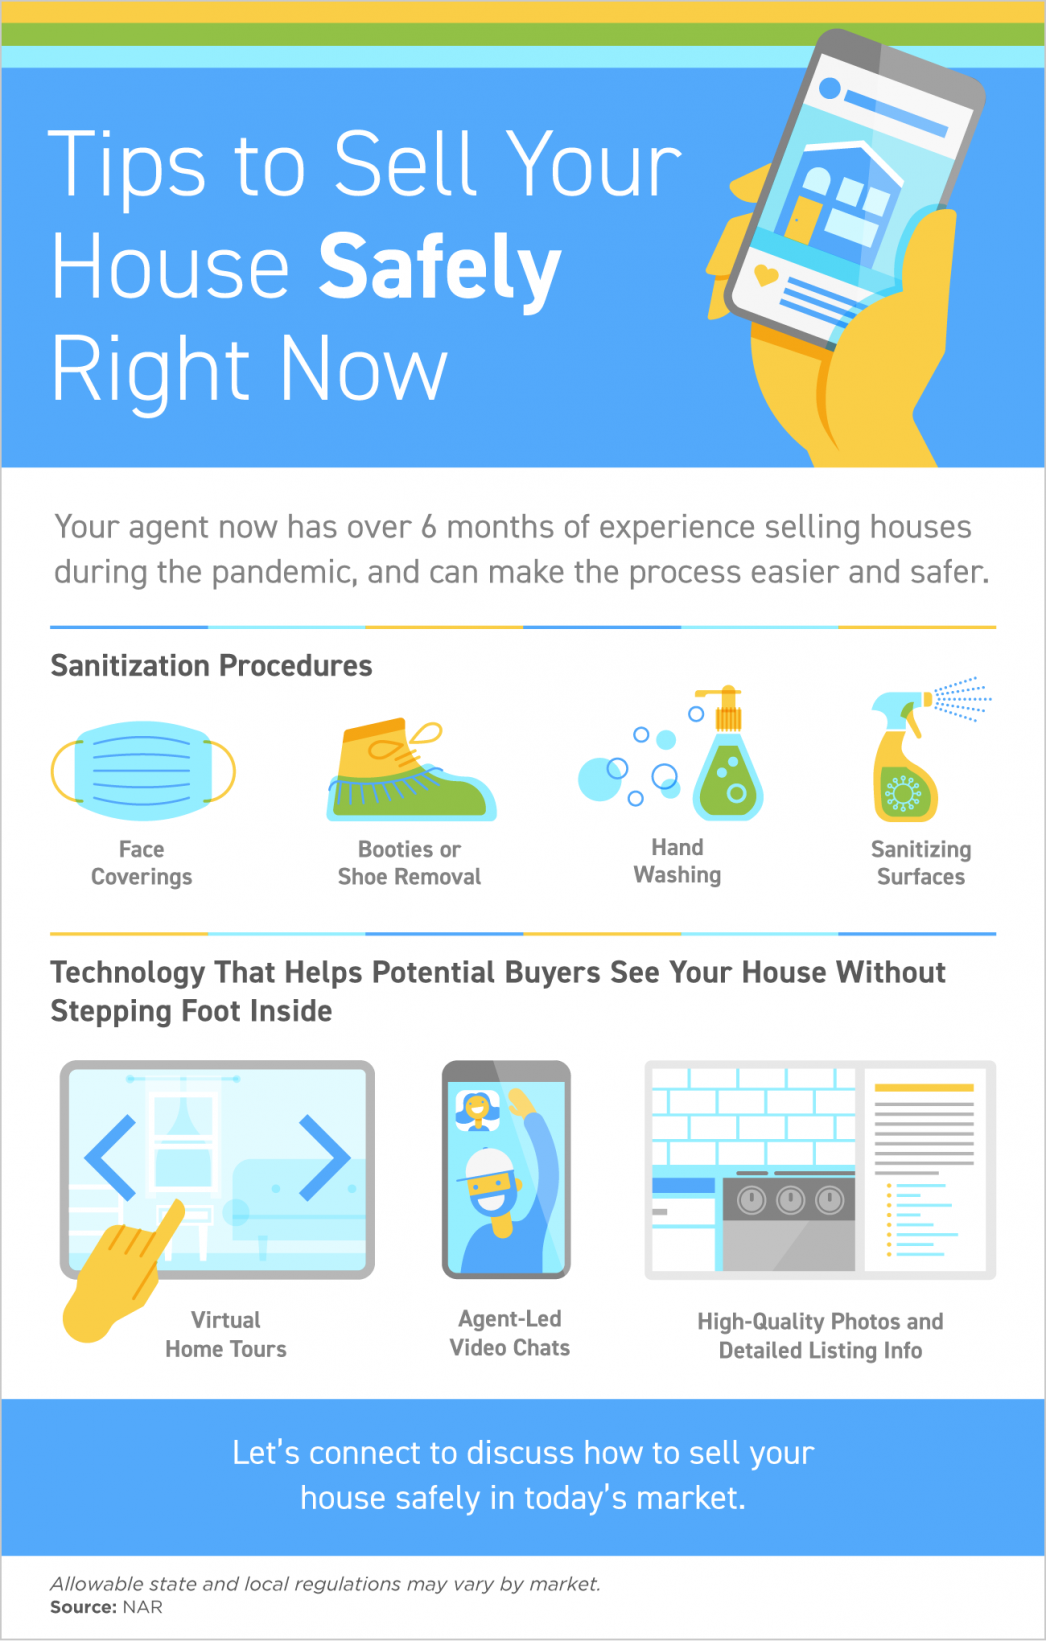 Tips to Sell Your House Safely Right Now [INFOGRAPHIC]   Maine Real Estate Blog   Faontaine Famly - The Real Estate Leader   Auburn, Scarborough, Maine